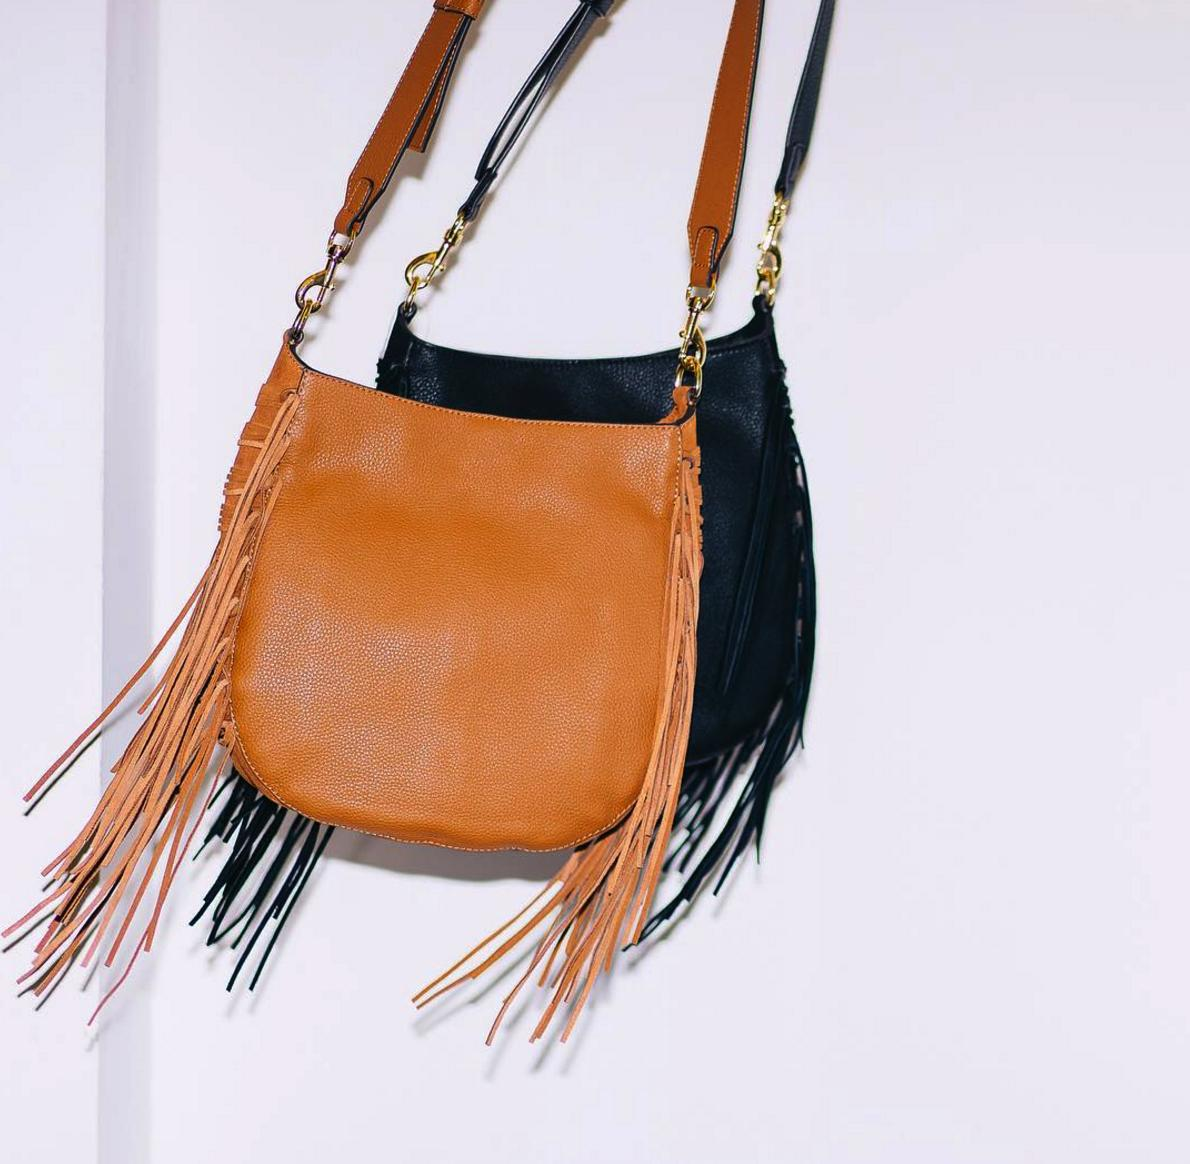 Up to 50% Off + $25 Off Every $200 Purchase Rebecca Minkoff Handbags Sale @ Bloomingdales